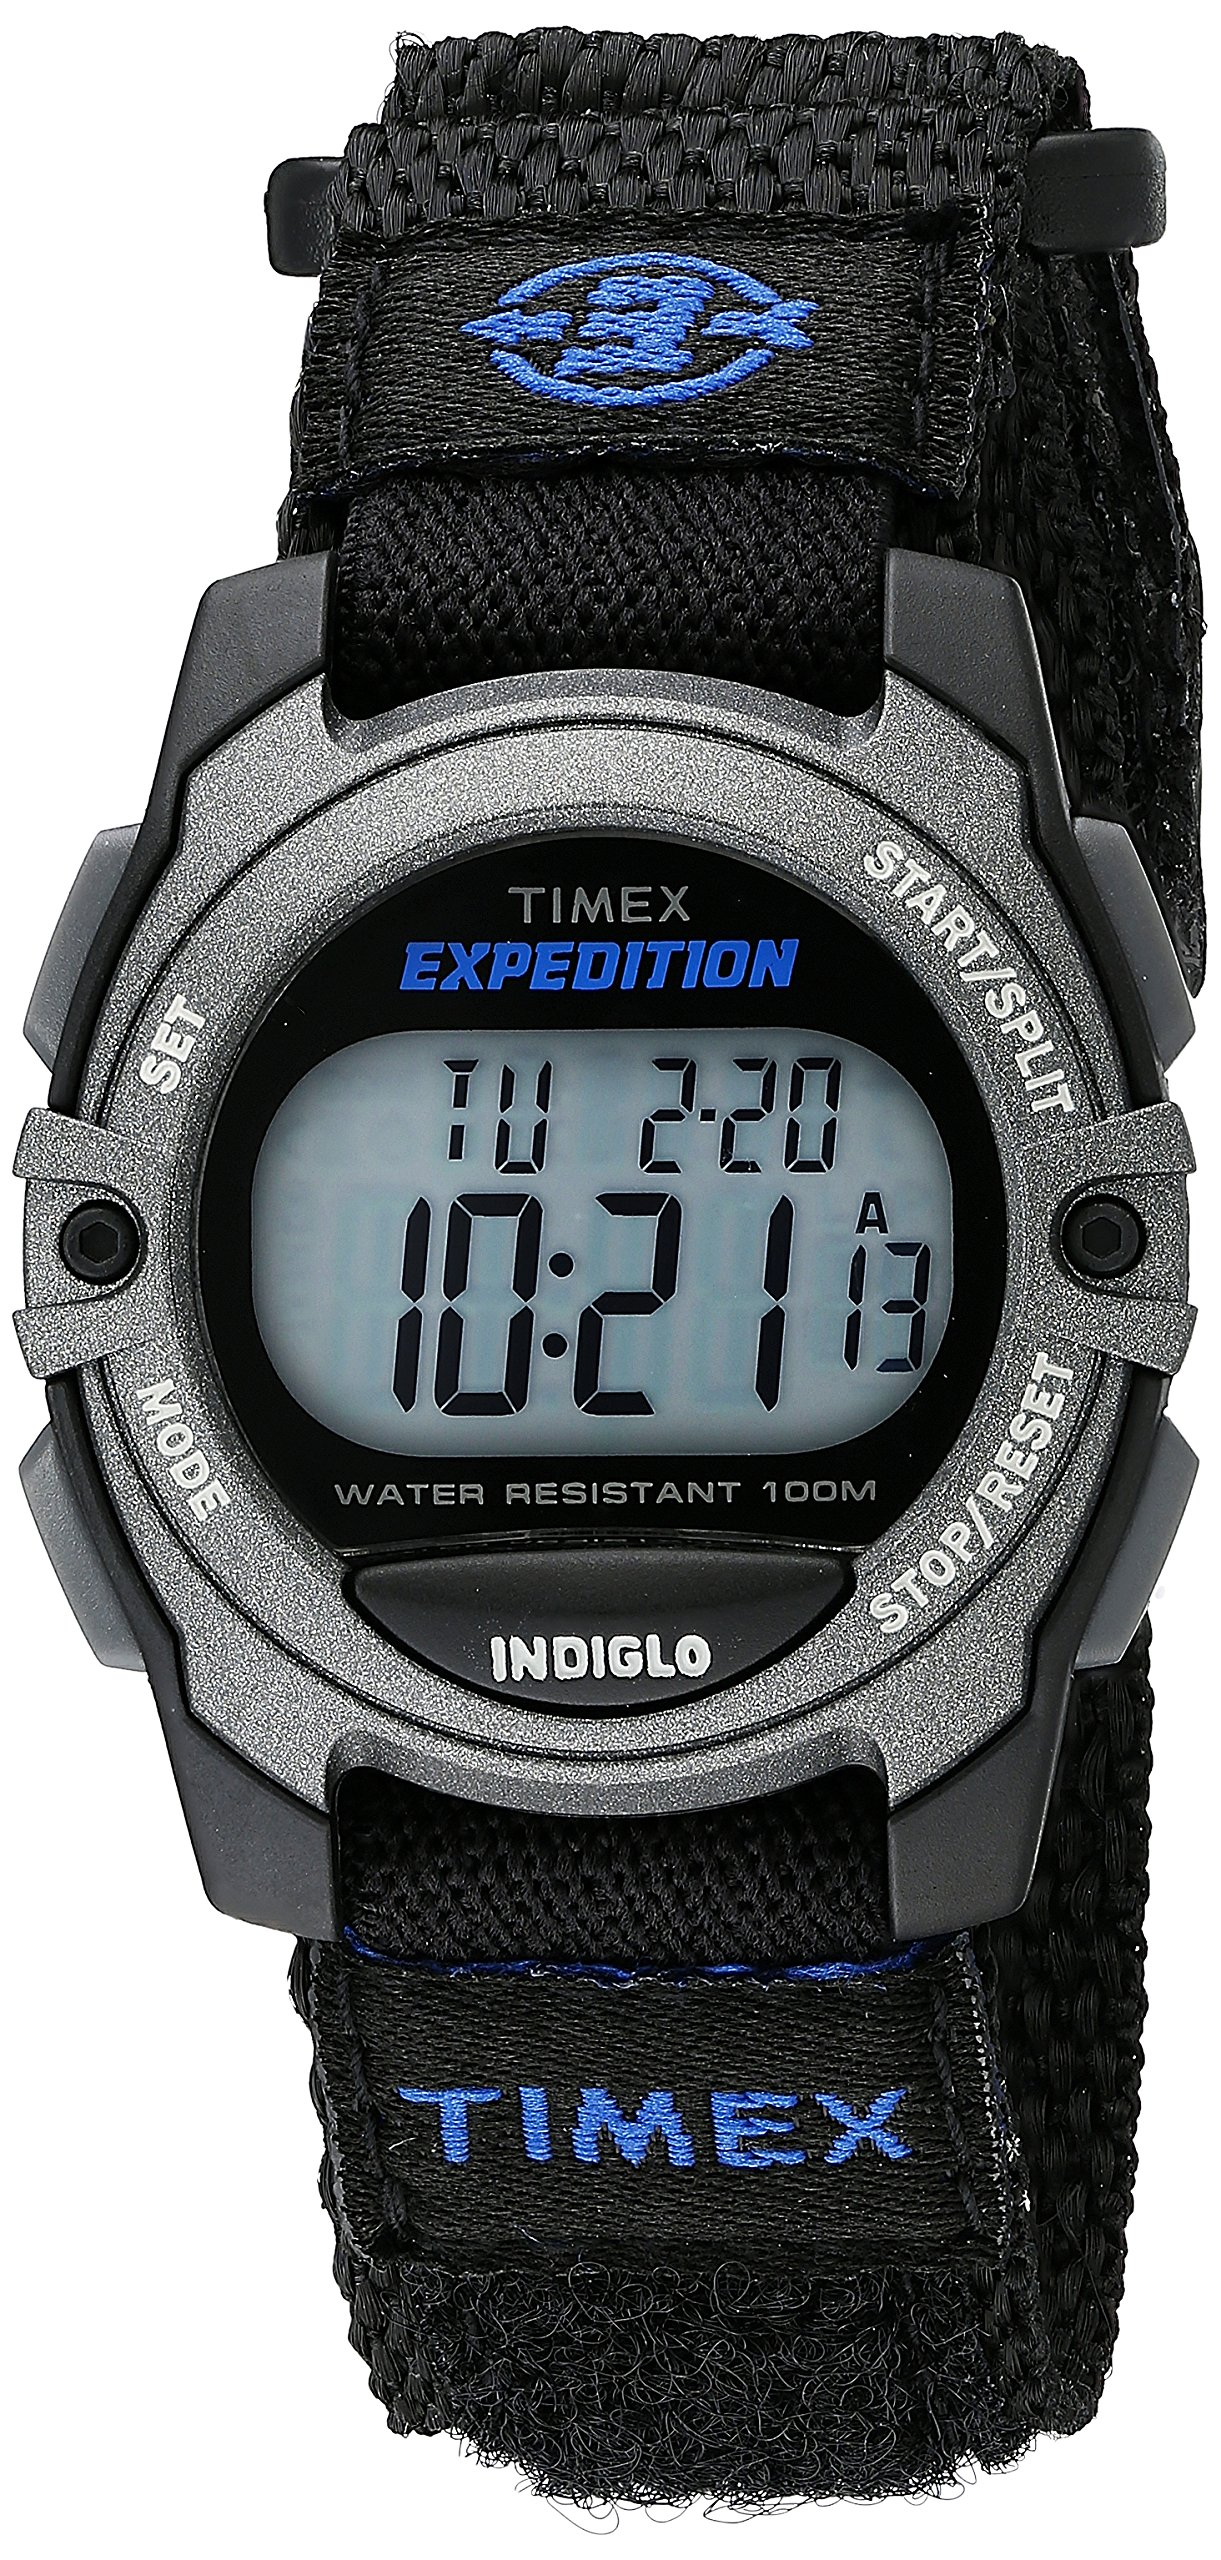 Timex Expedition Digital Chrono Alarm Timer 33mm Watch by Timex